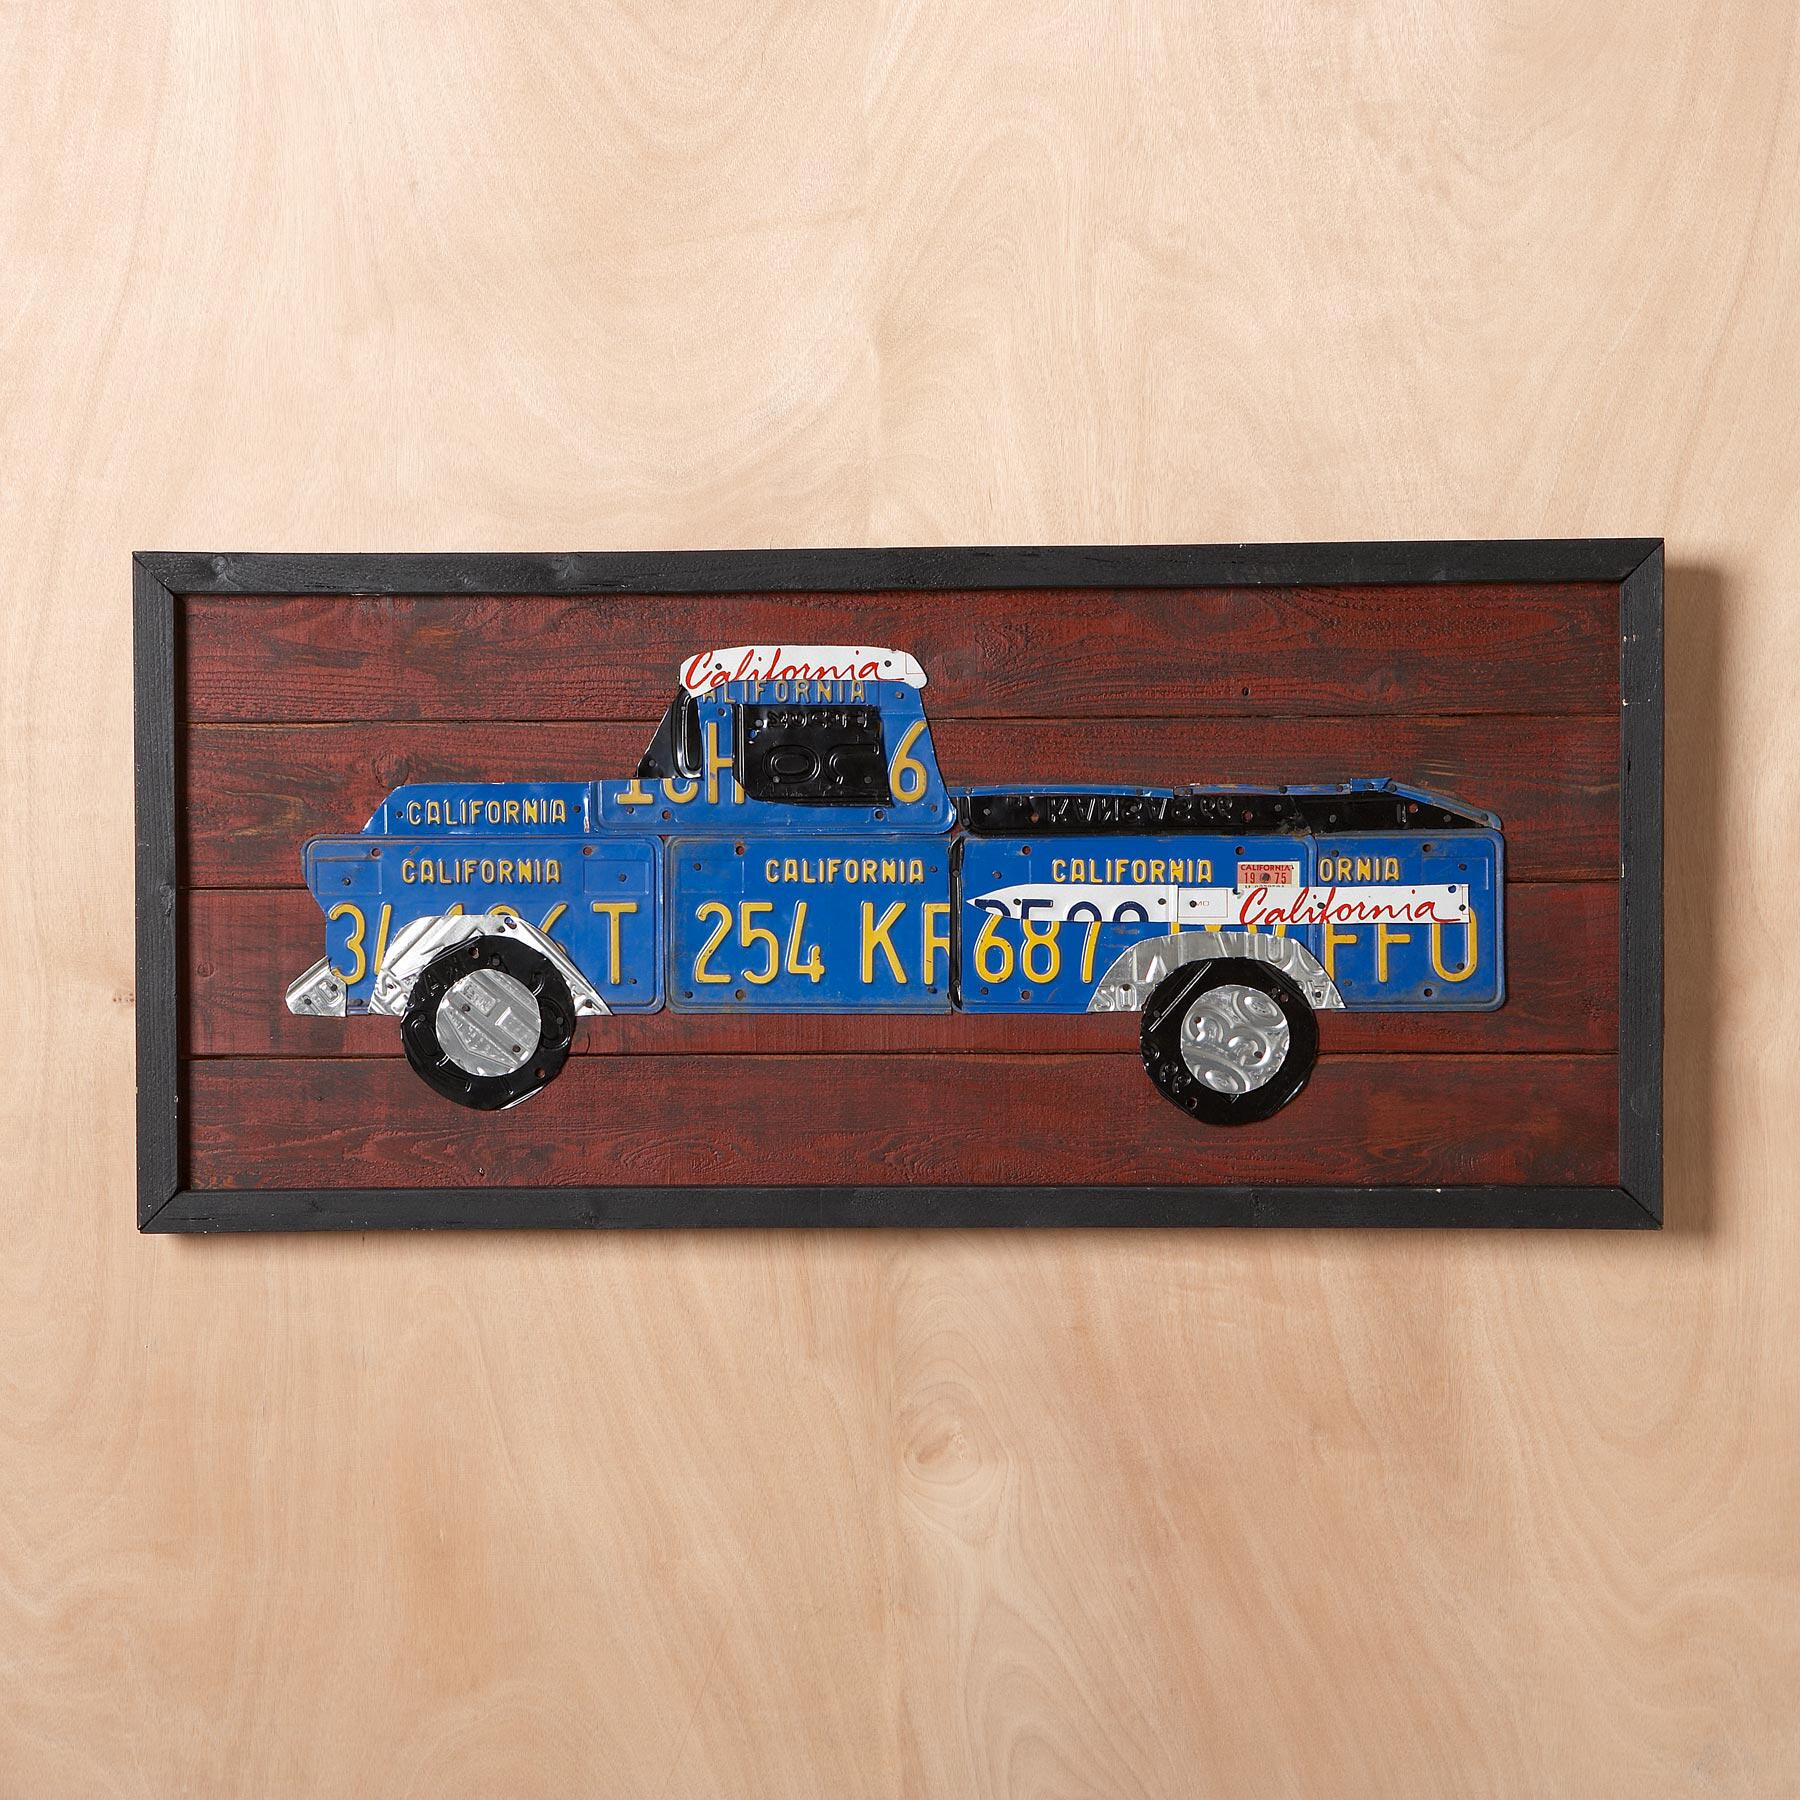 LICENSE PLATE TRUCK WALL ART: View 3